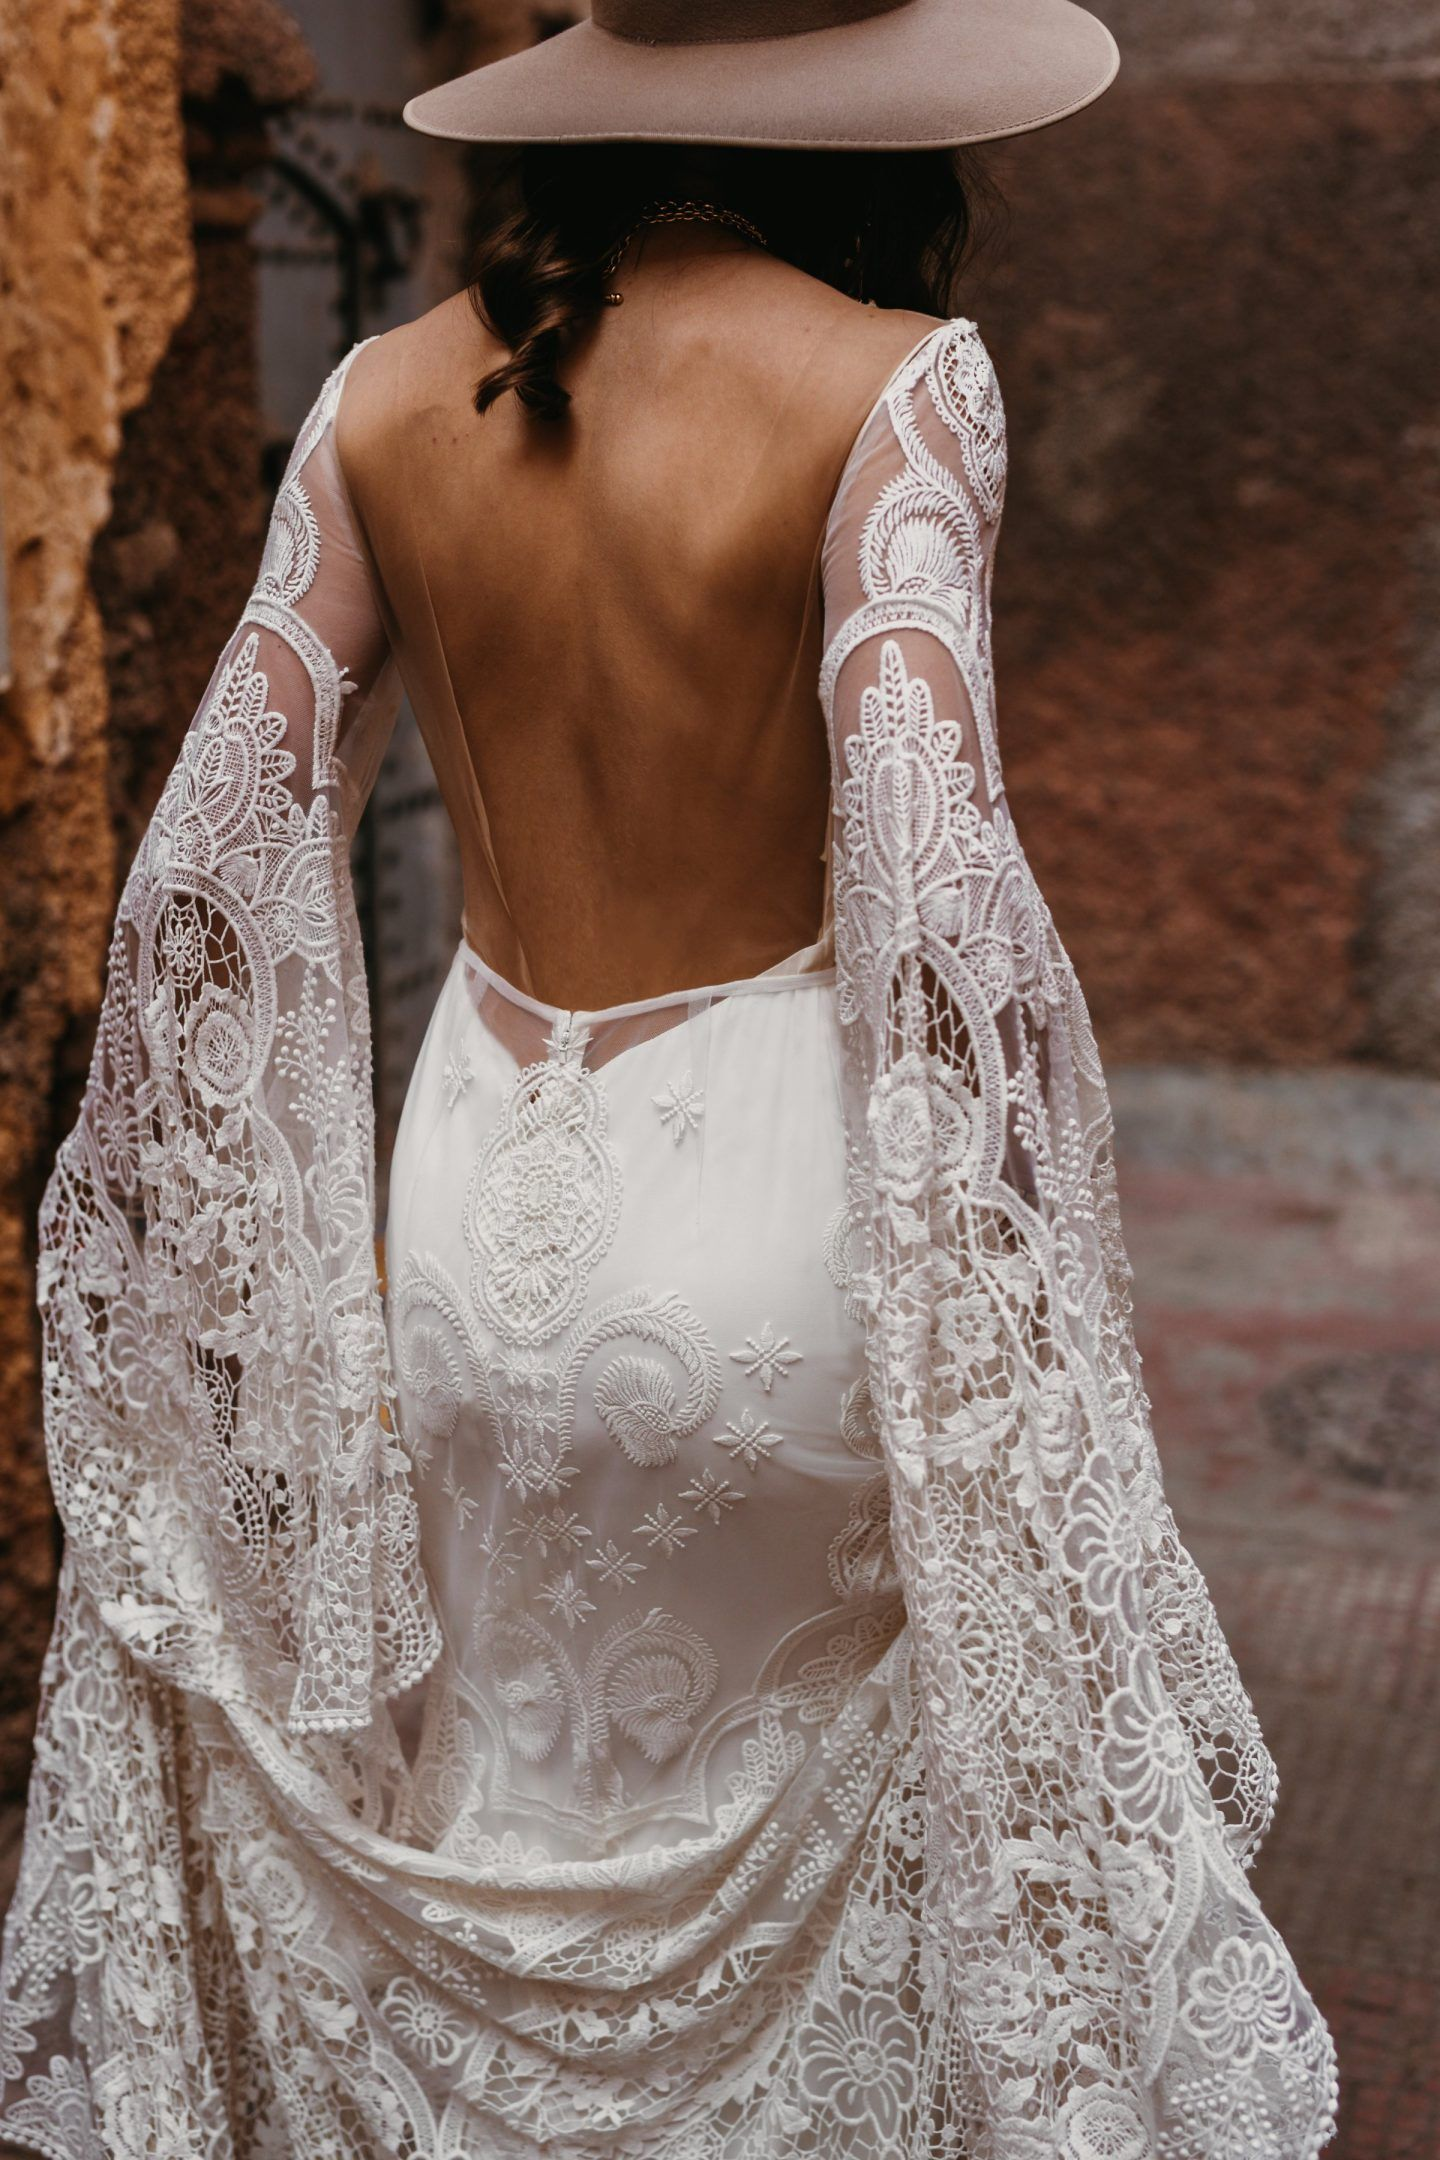 Boho wedding dress with sleeves  Rue De Seine Wild Heart  The White Files  Gowns with The White